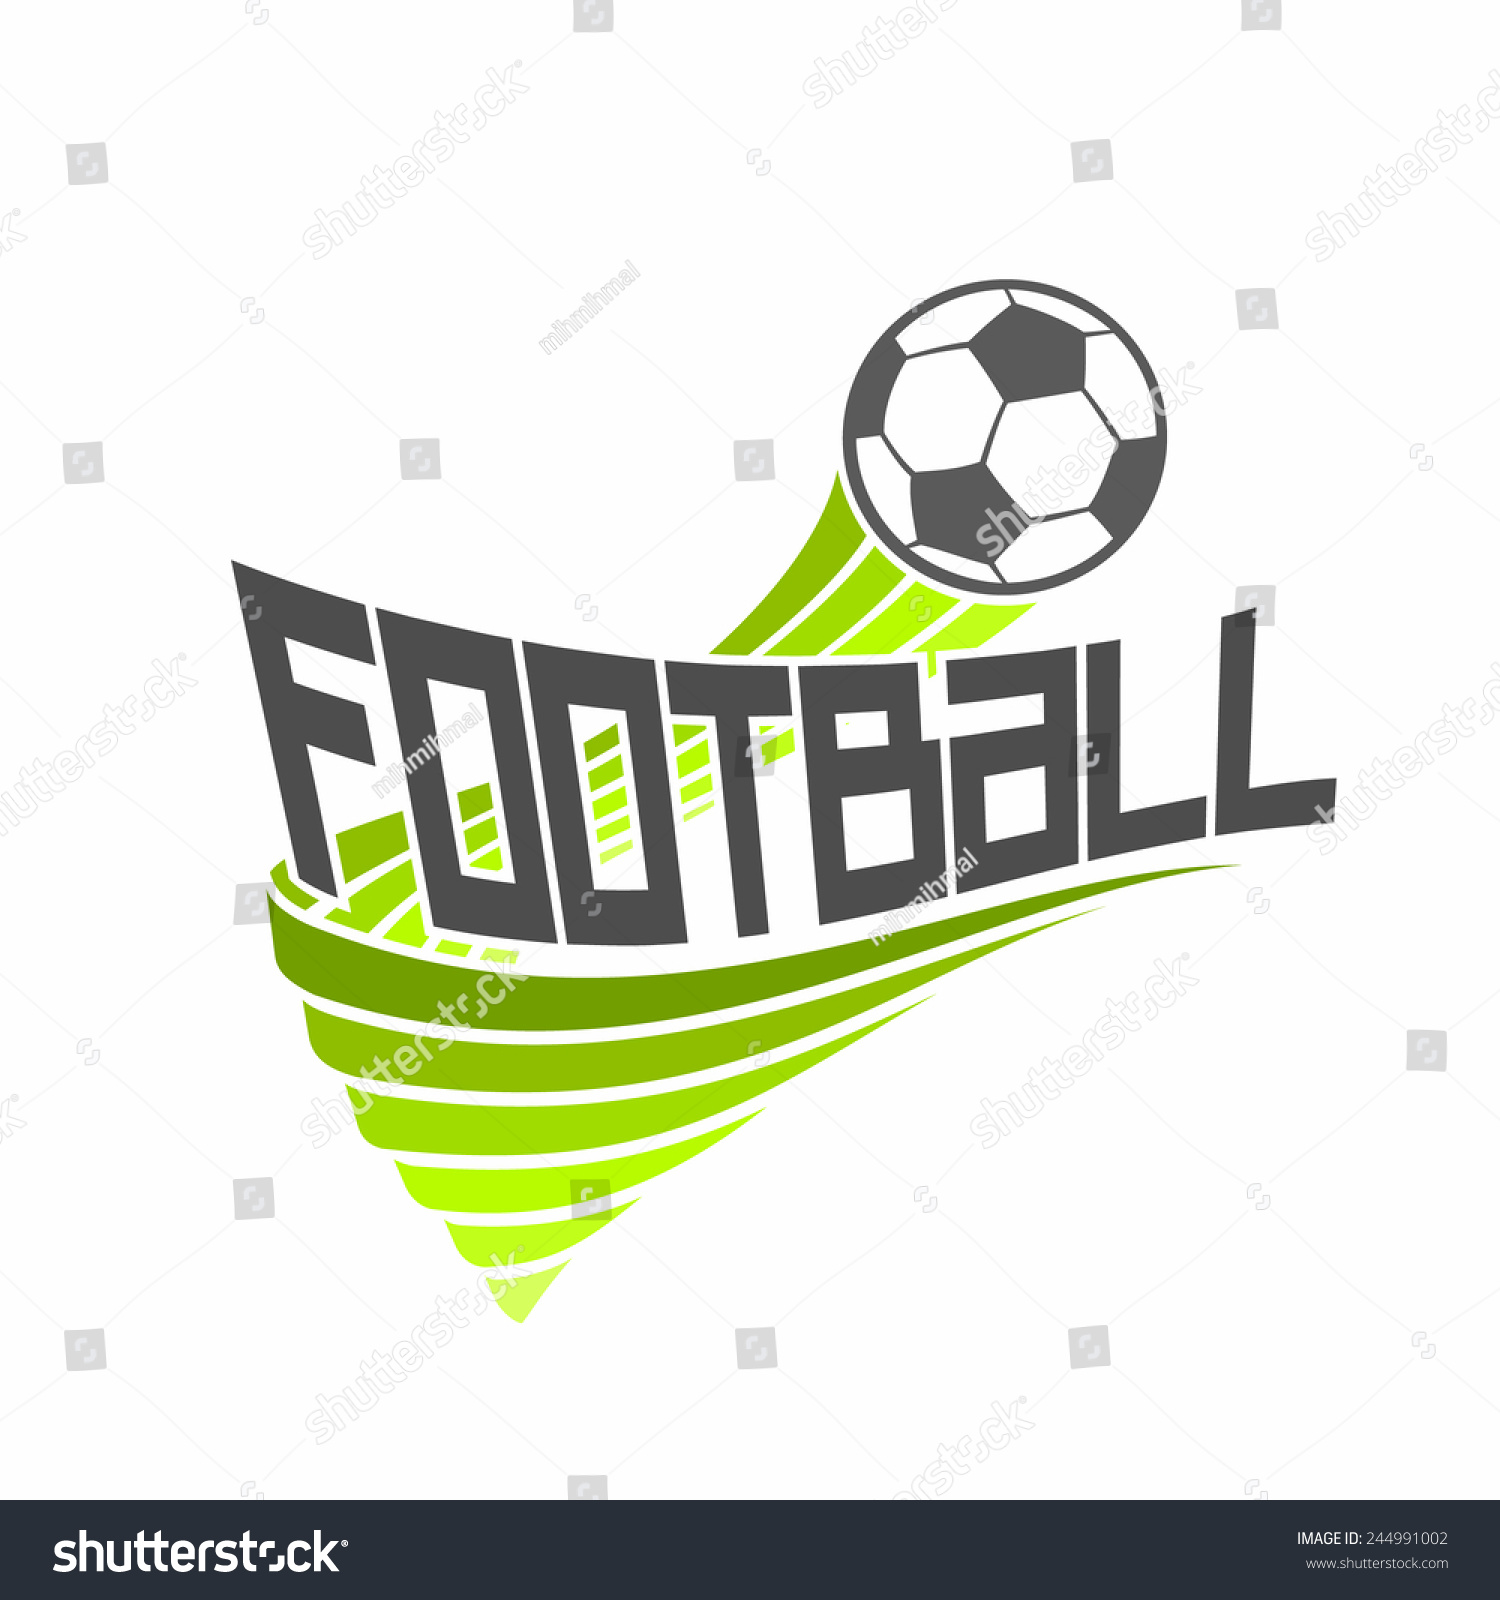 Vector logo football soccer club composition stock vector vector logo for football soccer club composition consisting of black and white soccer ball and buycottarizona